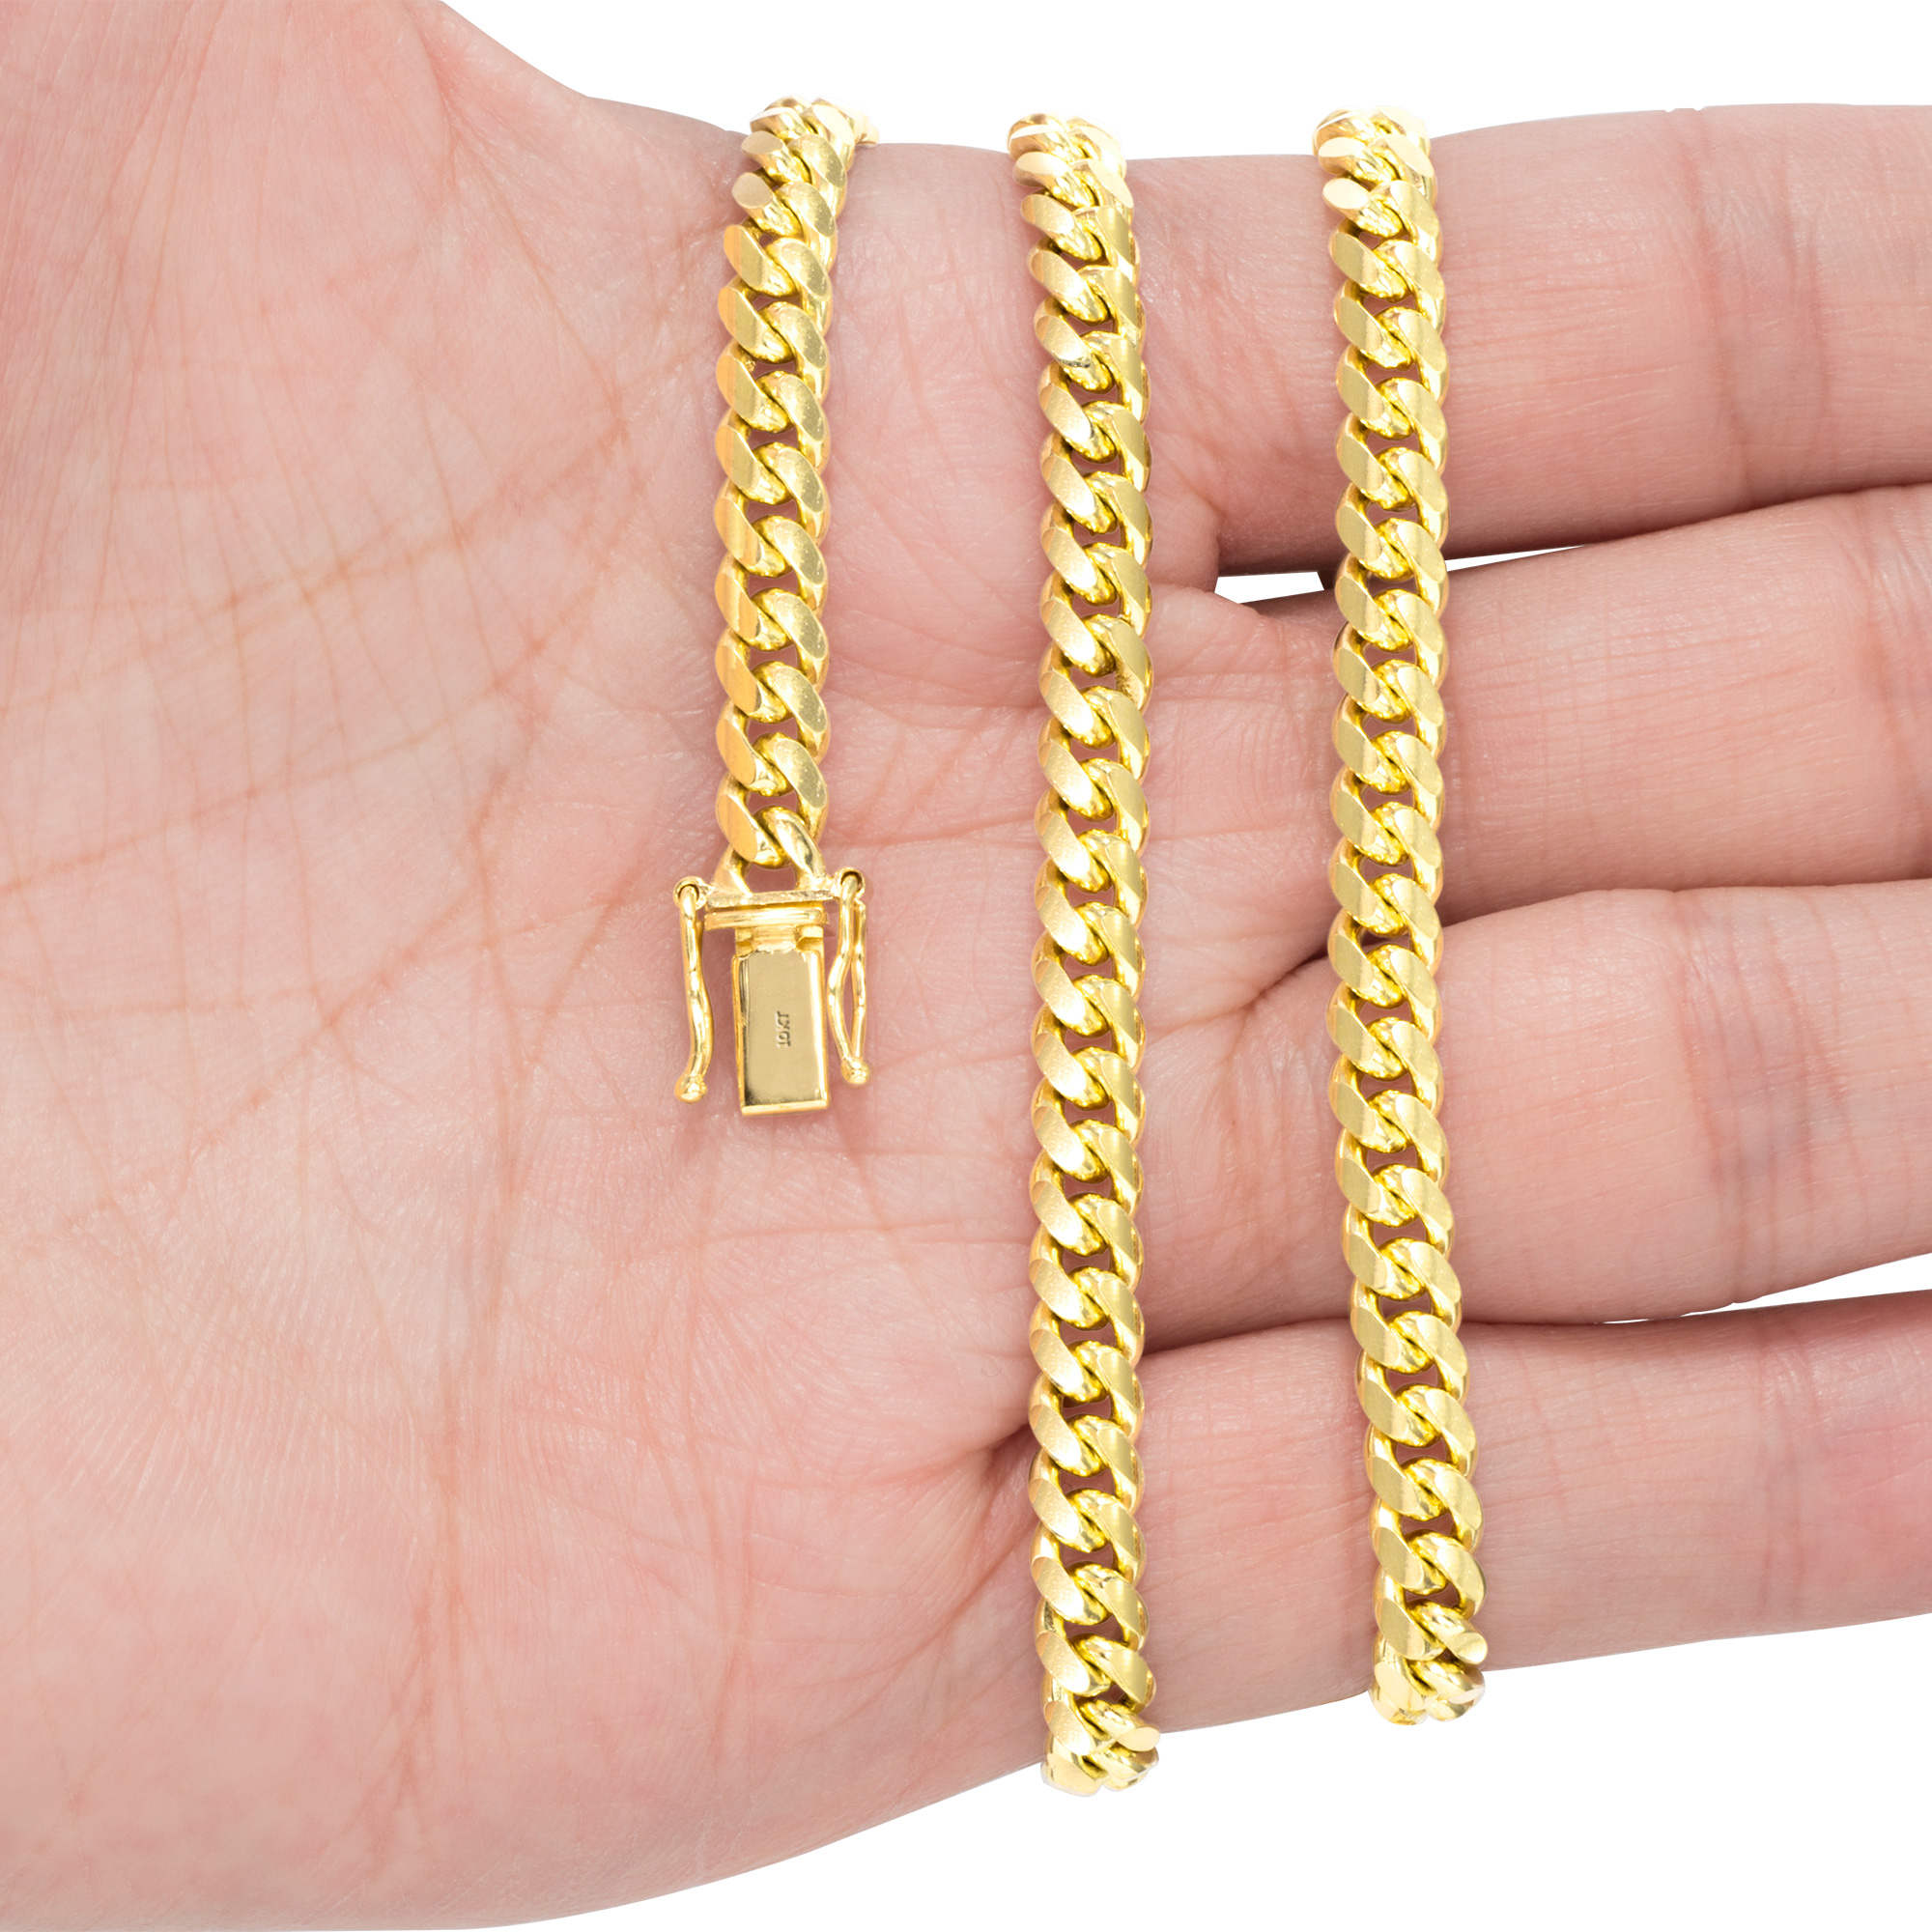 10K-Yellow-Gold-Solid-2-7mm-10mm-Miami-Cuban-Link-Chain-Necklace-Bracelet-7-034-30-034 thumbnail 20